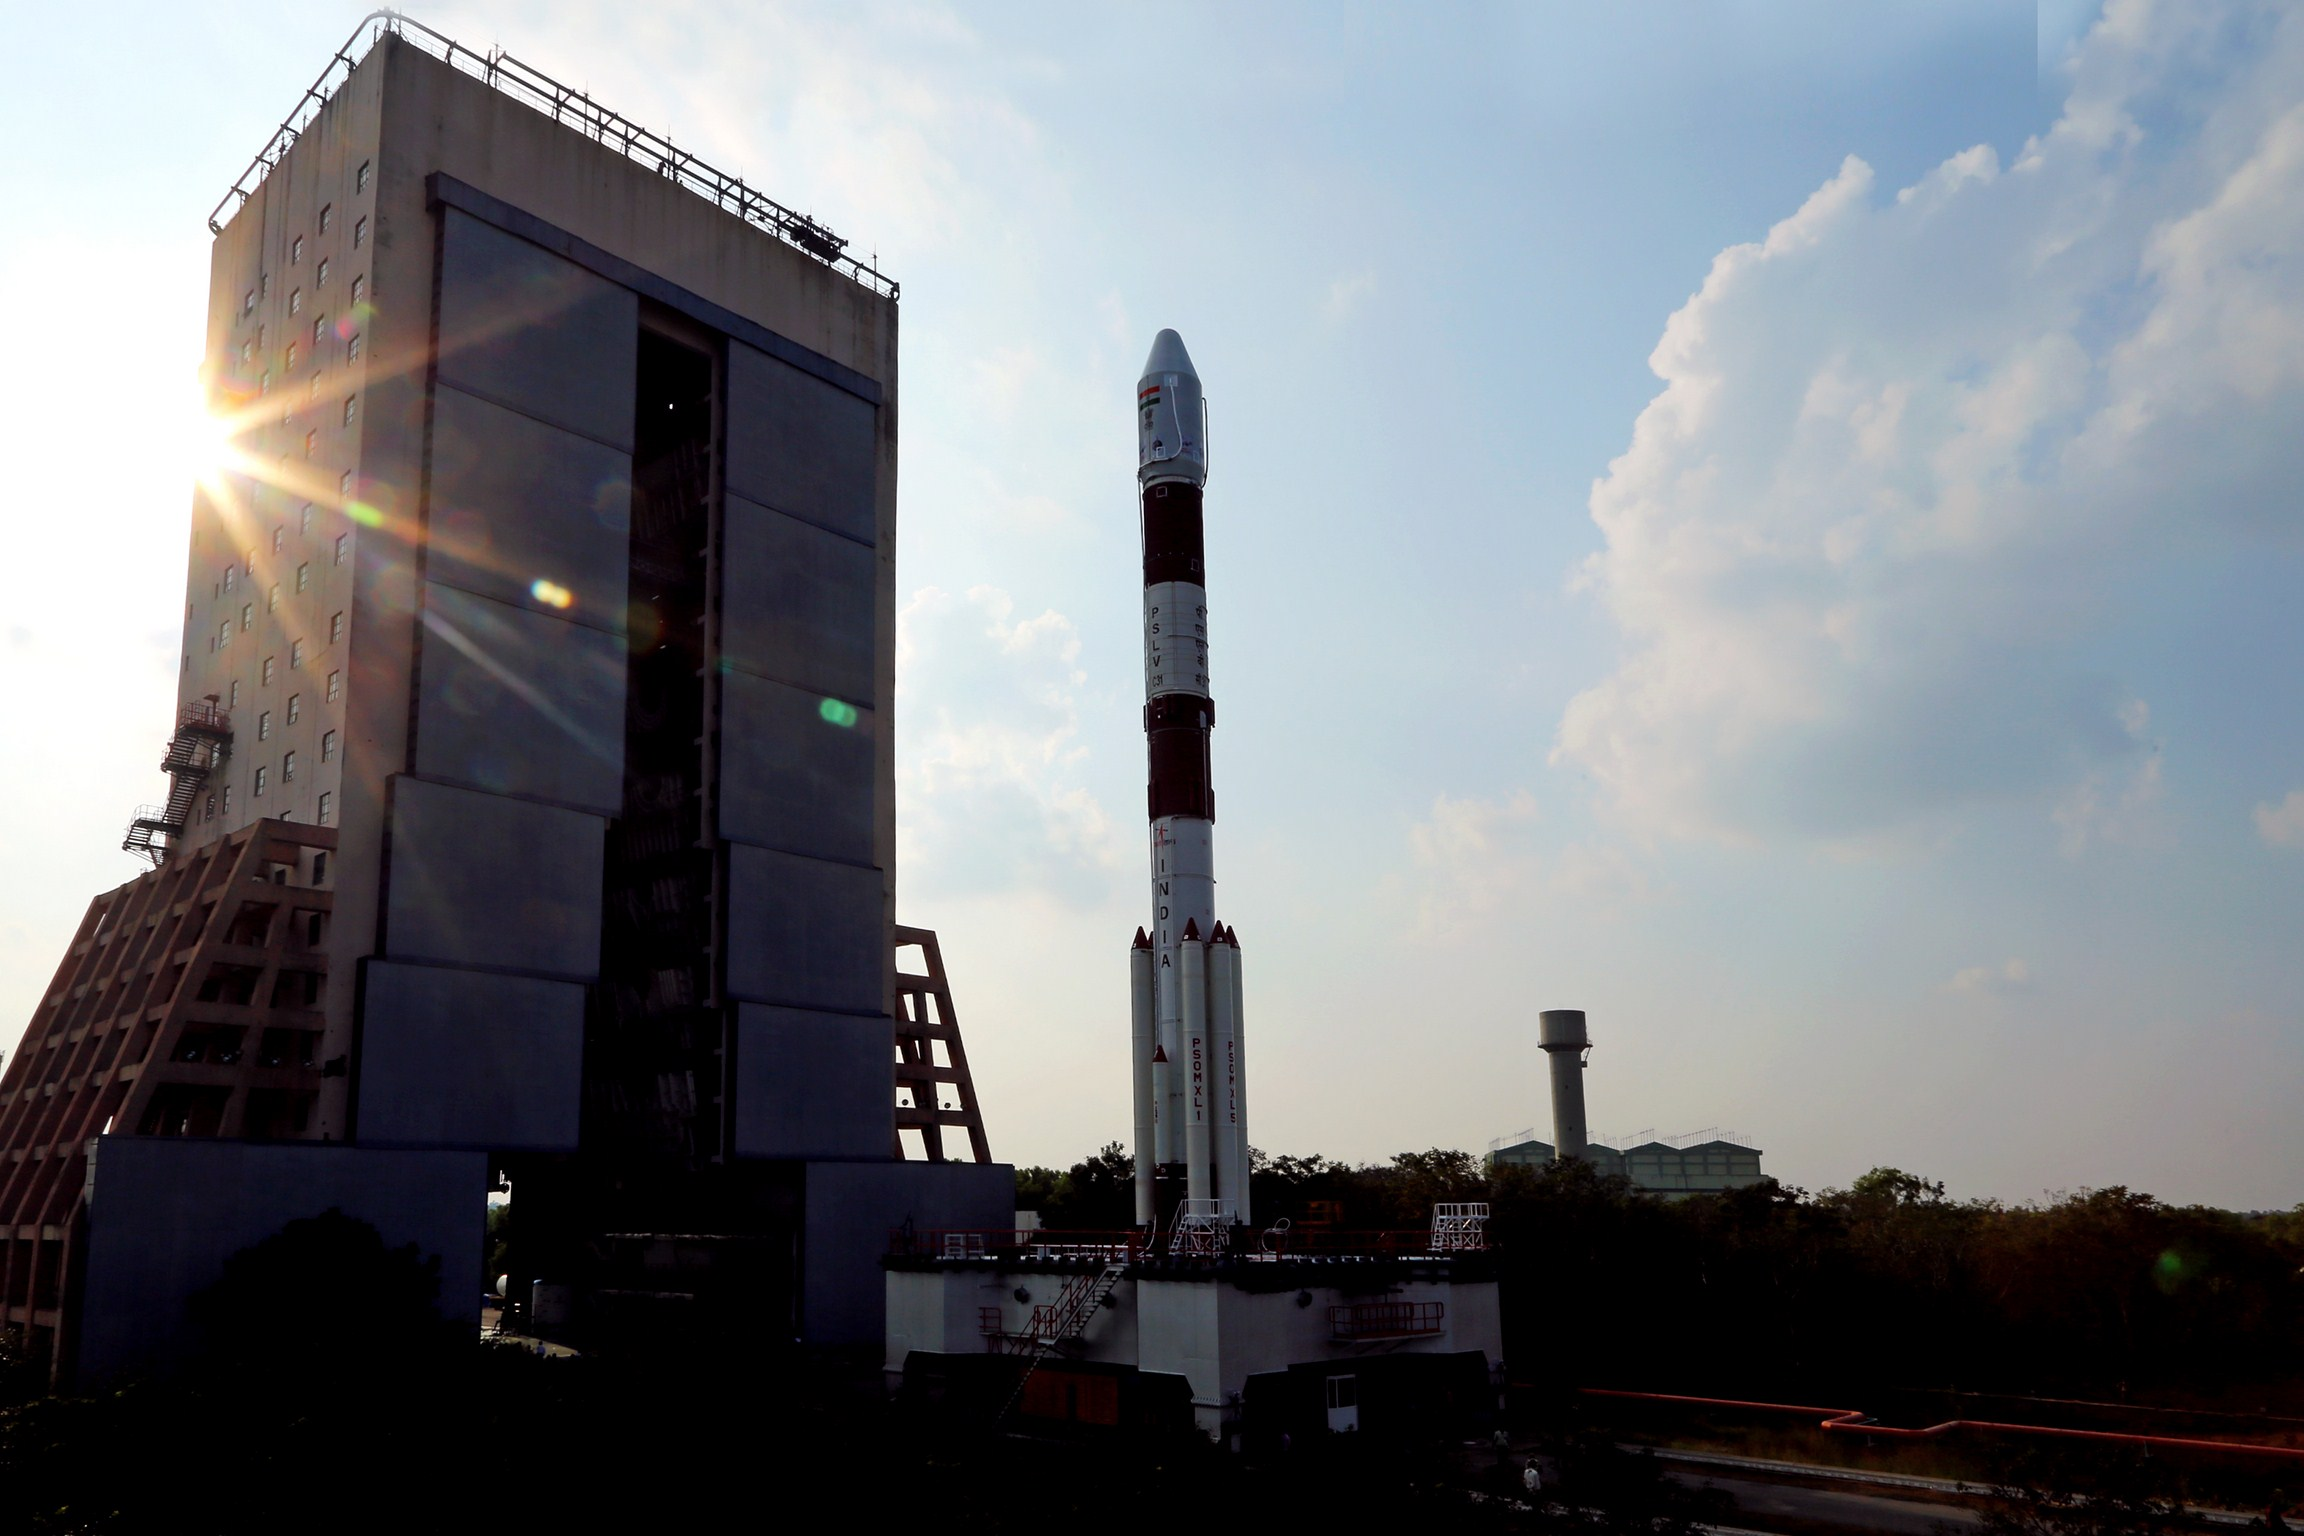 The PSLV rolls out of its Vehicle Assembly Building at the Satish Dhawan Space Center en route to the launch site's Second Launch Pad. Credit: ISRO